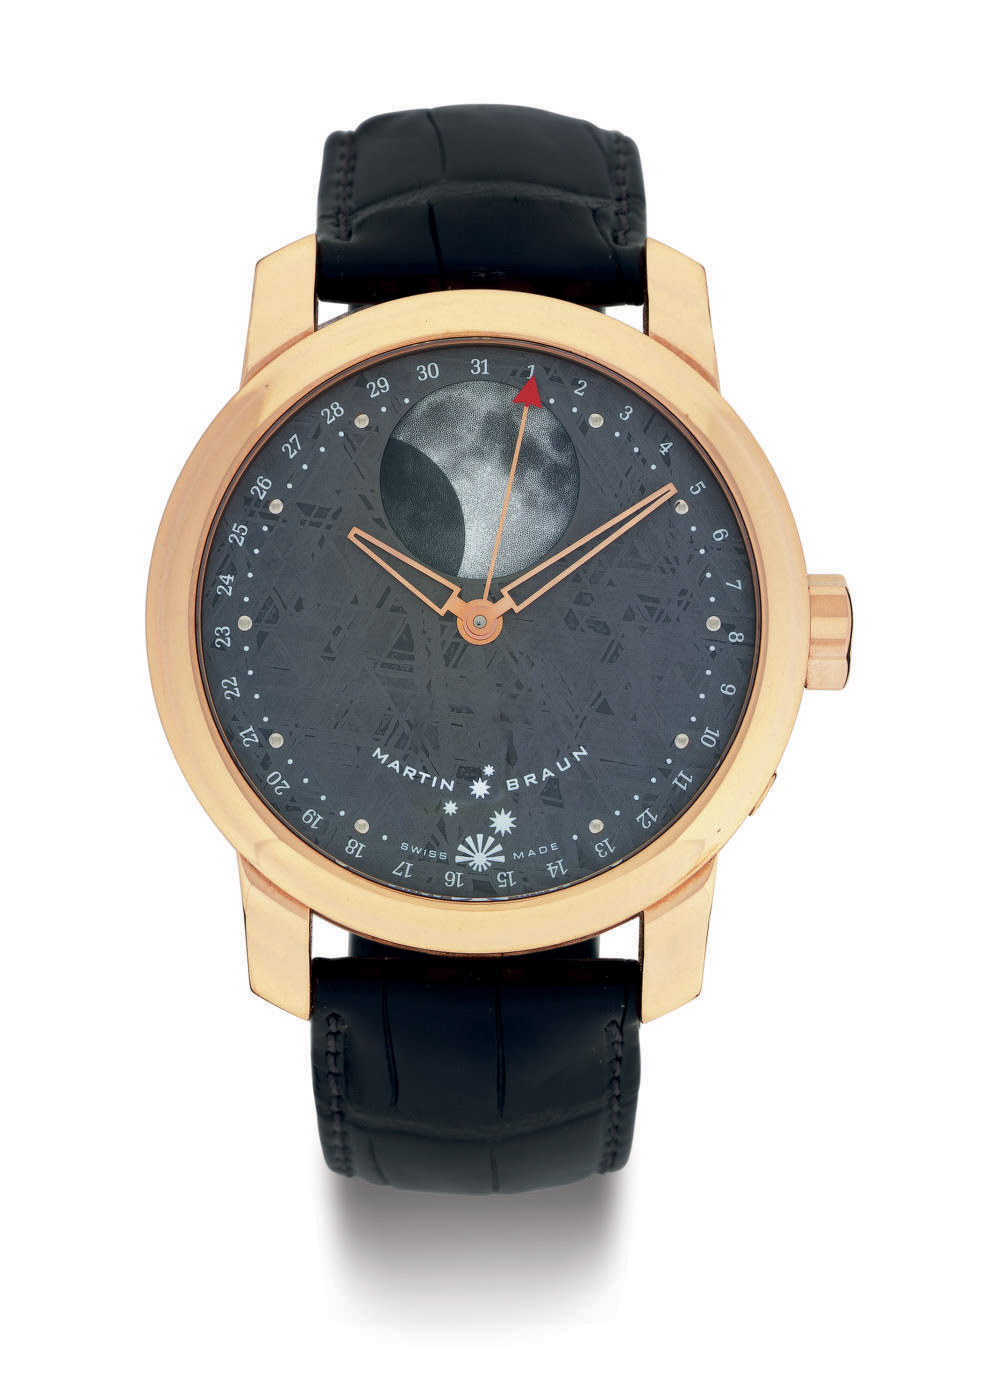 MARTIN BRAUN.  AN 18K PINK GOLD AND METEORITE AUTOMATIC WRISTWATCH WITH DATE AND MOON PHASES